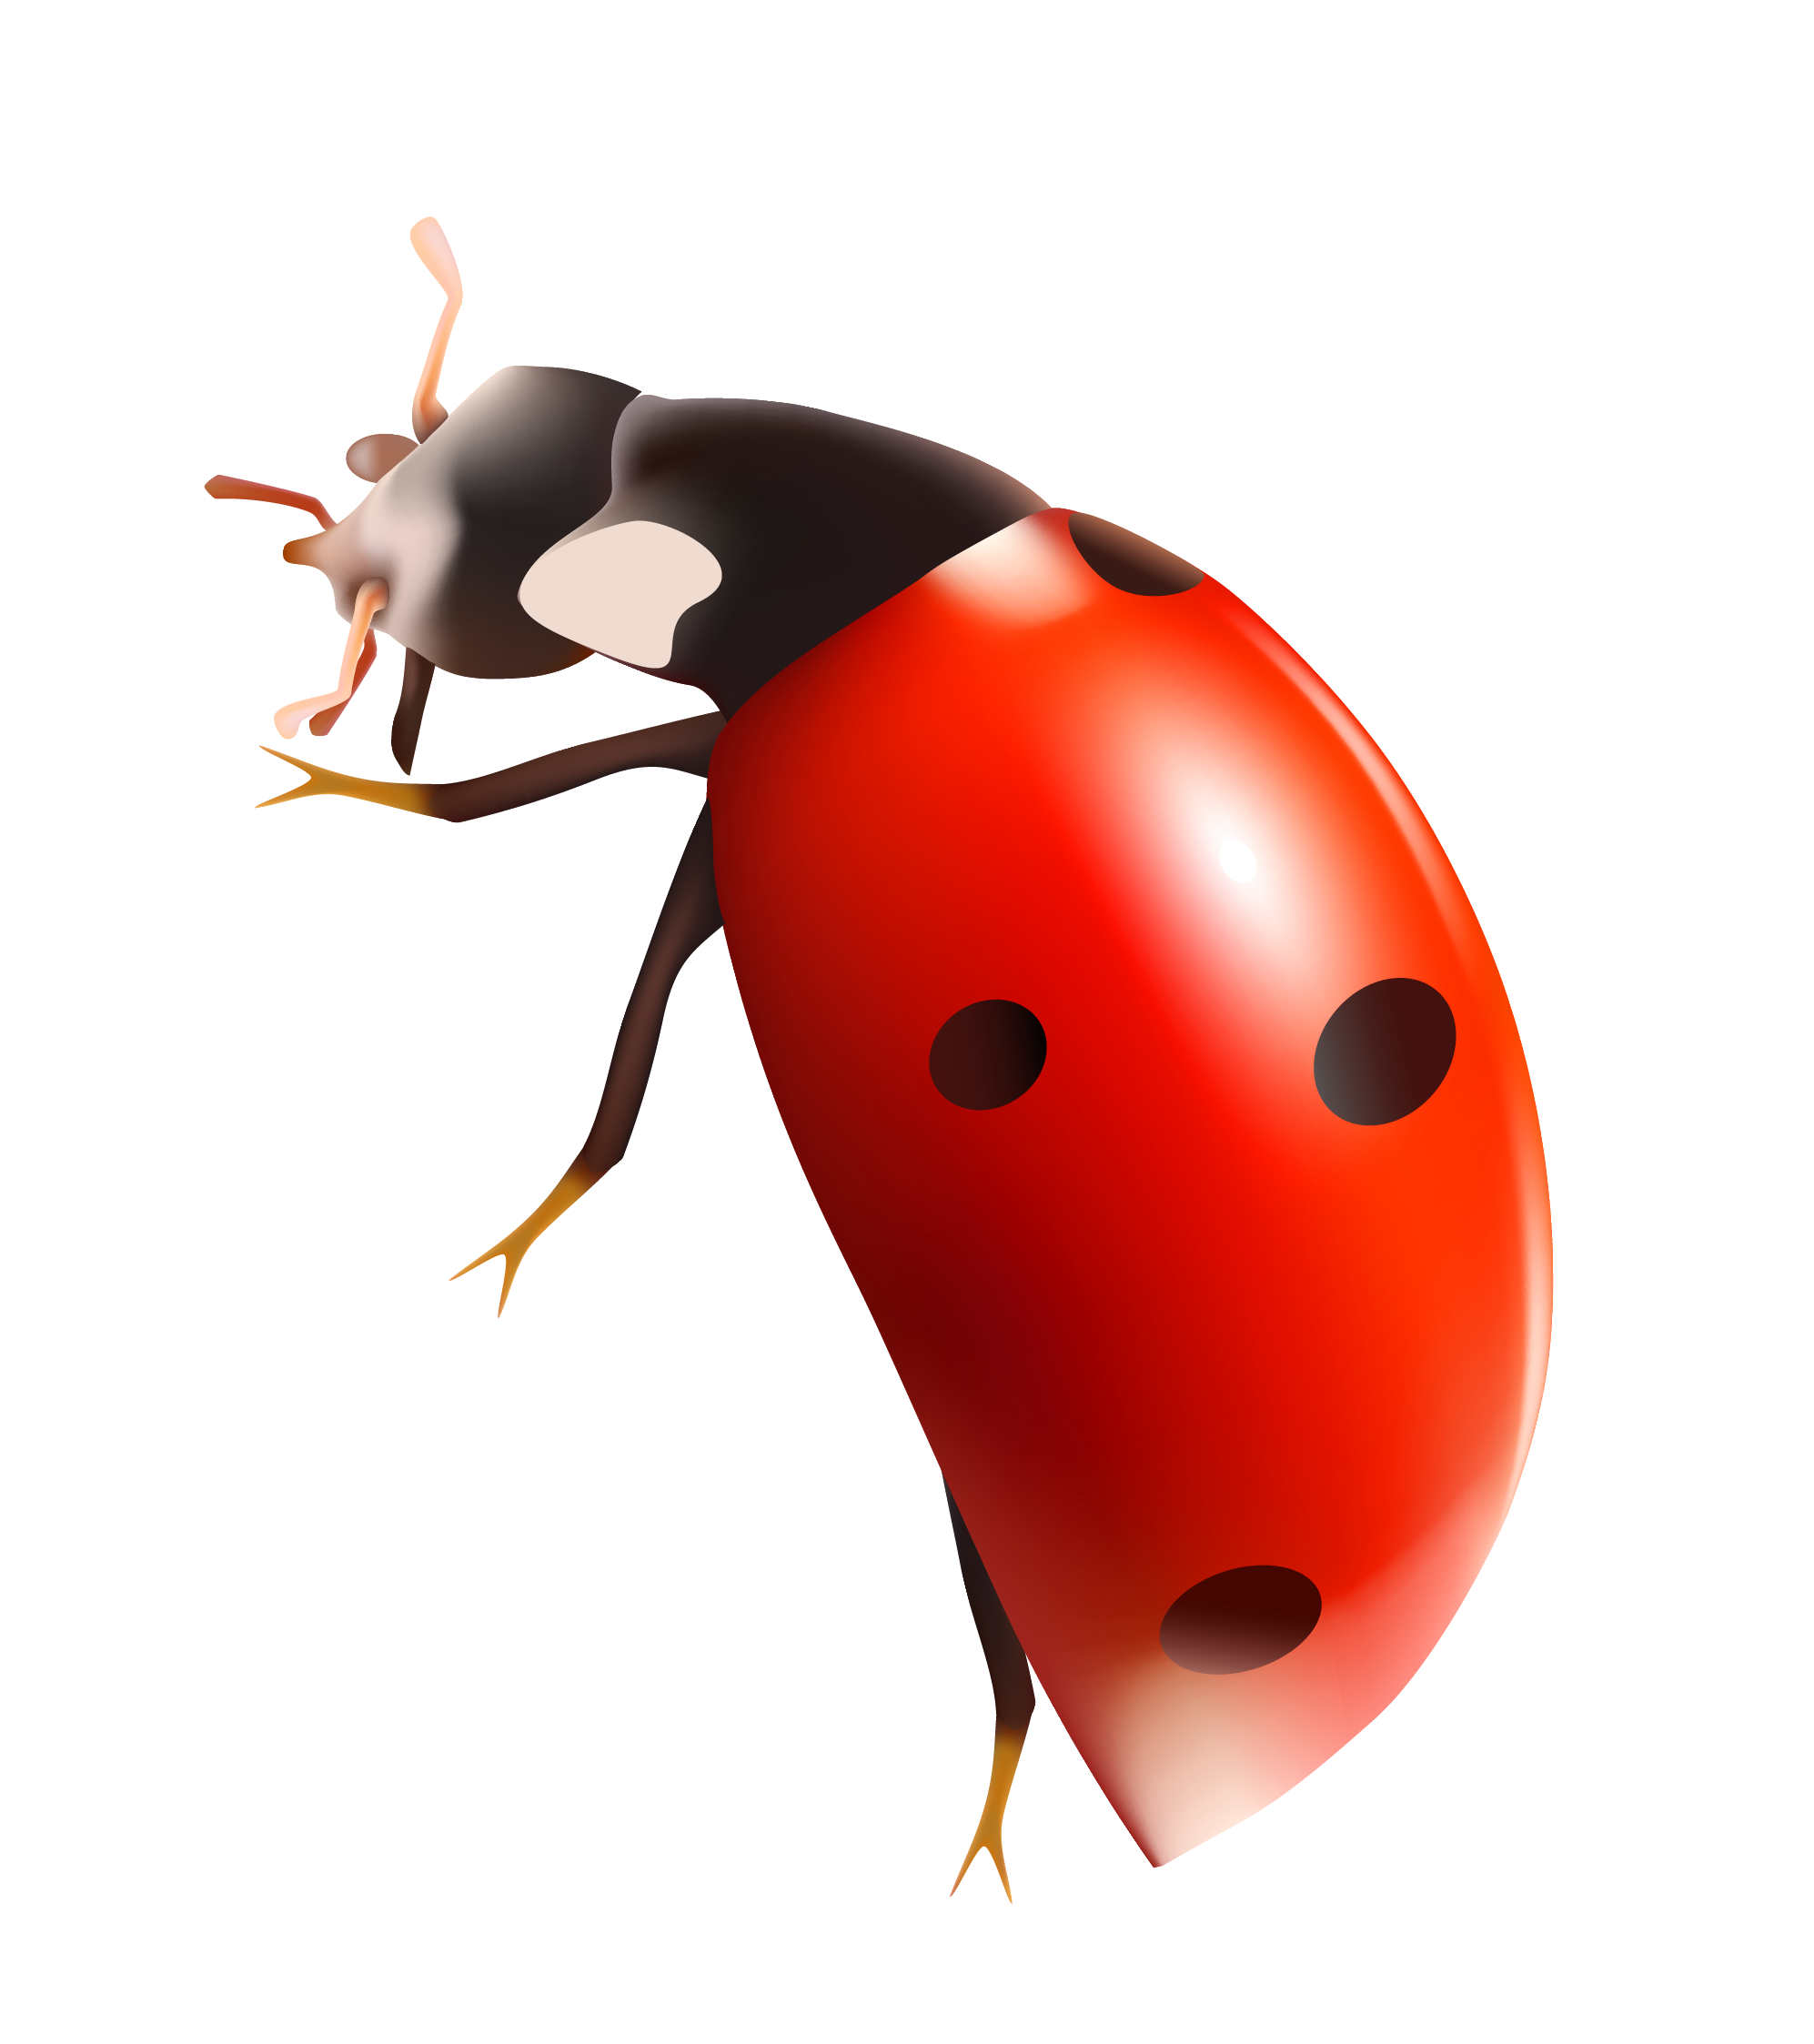 Transparent ladybug lucky. Ladybugs png images all